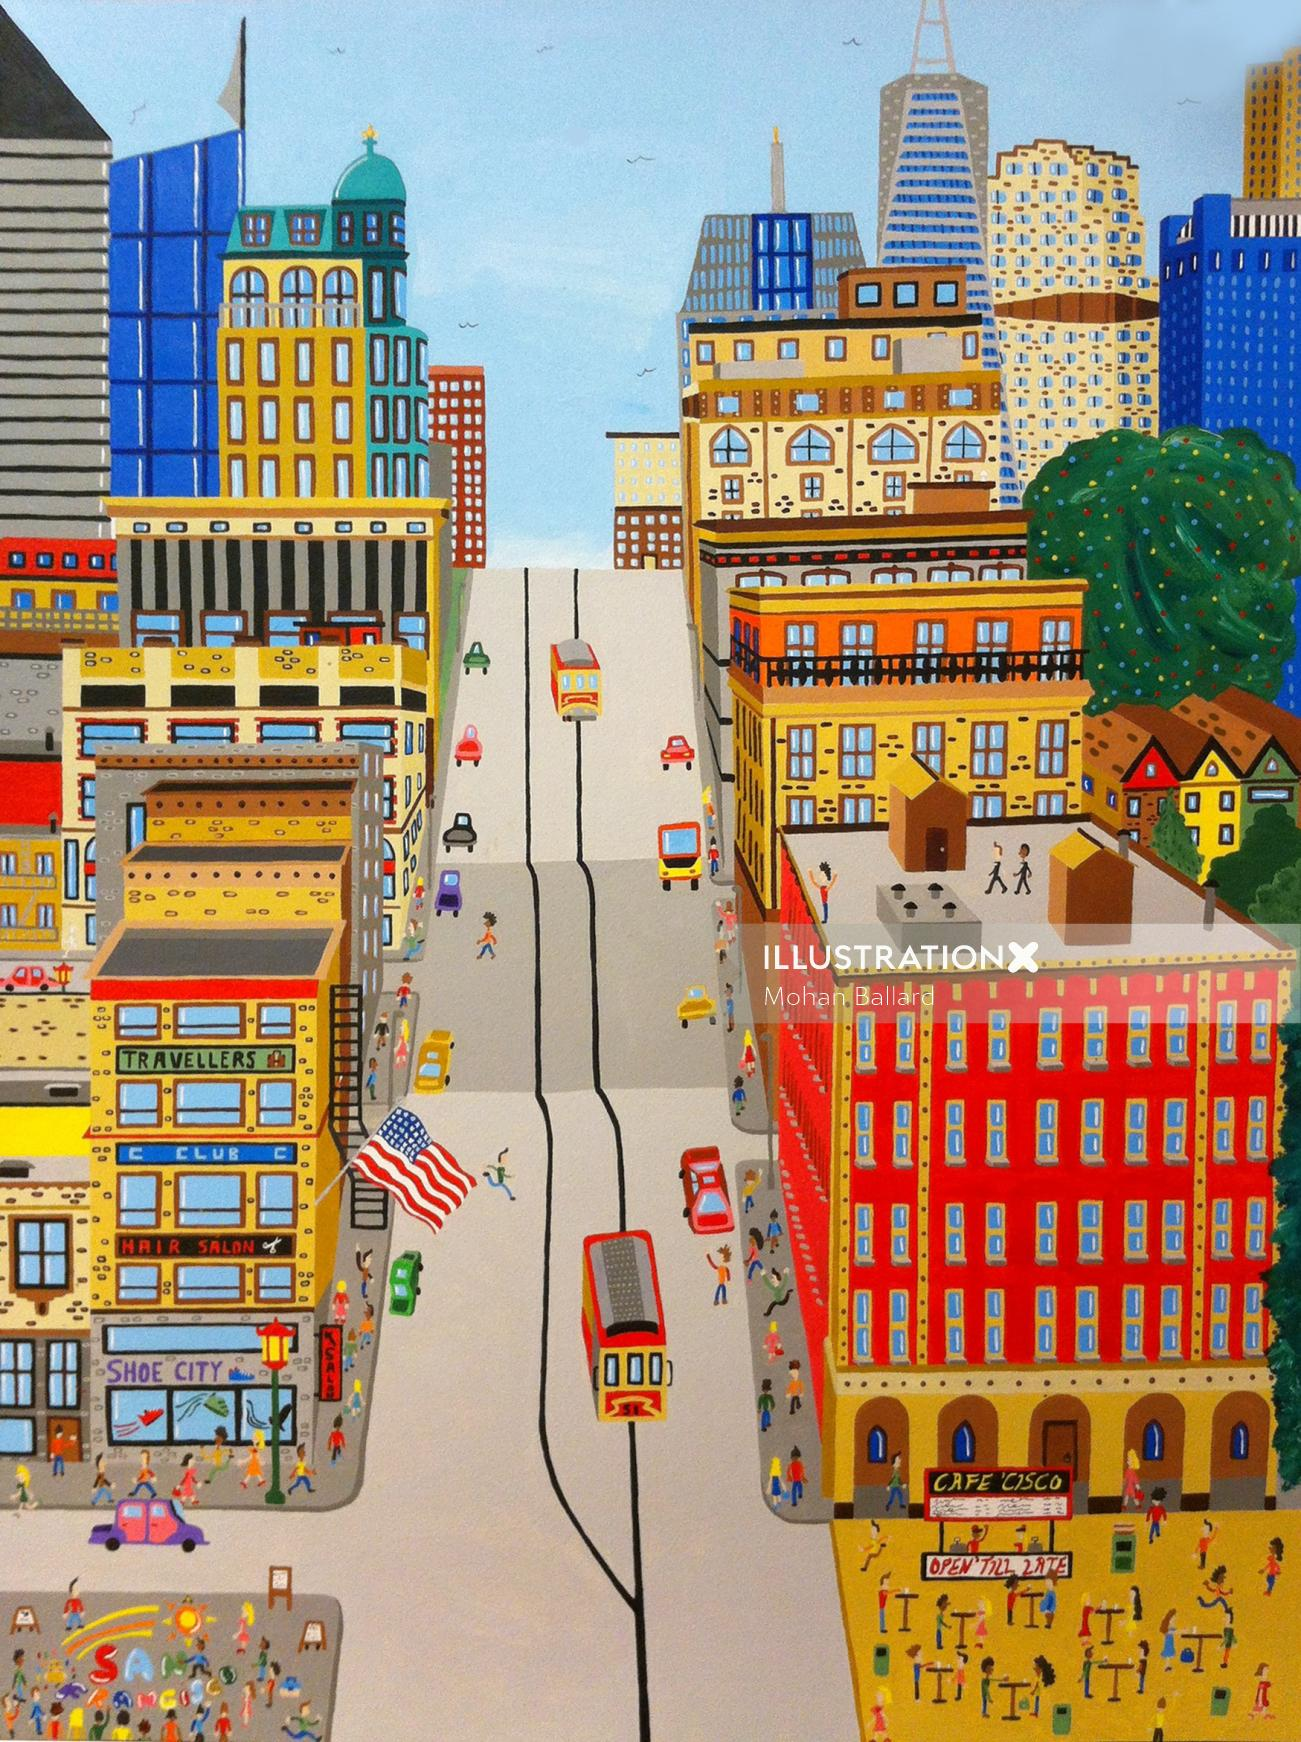 illustration of the sanfrancisco city with buildings and road